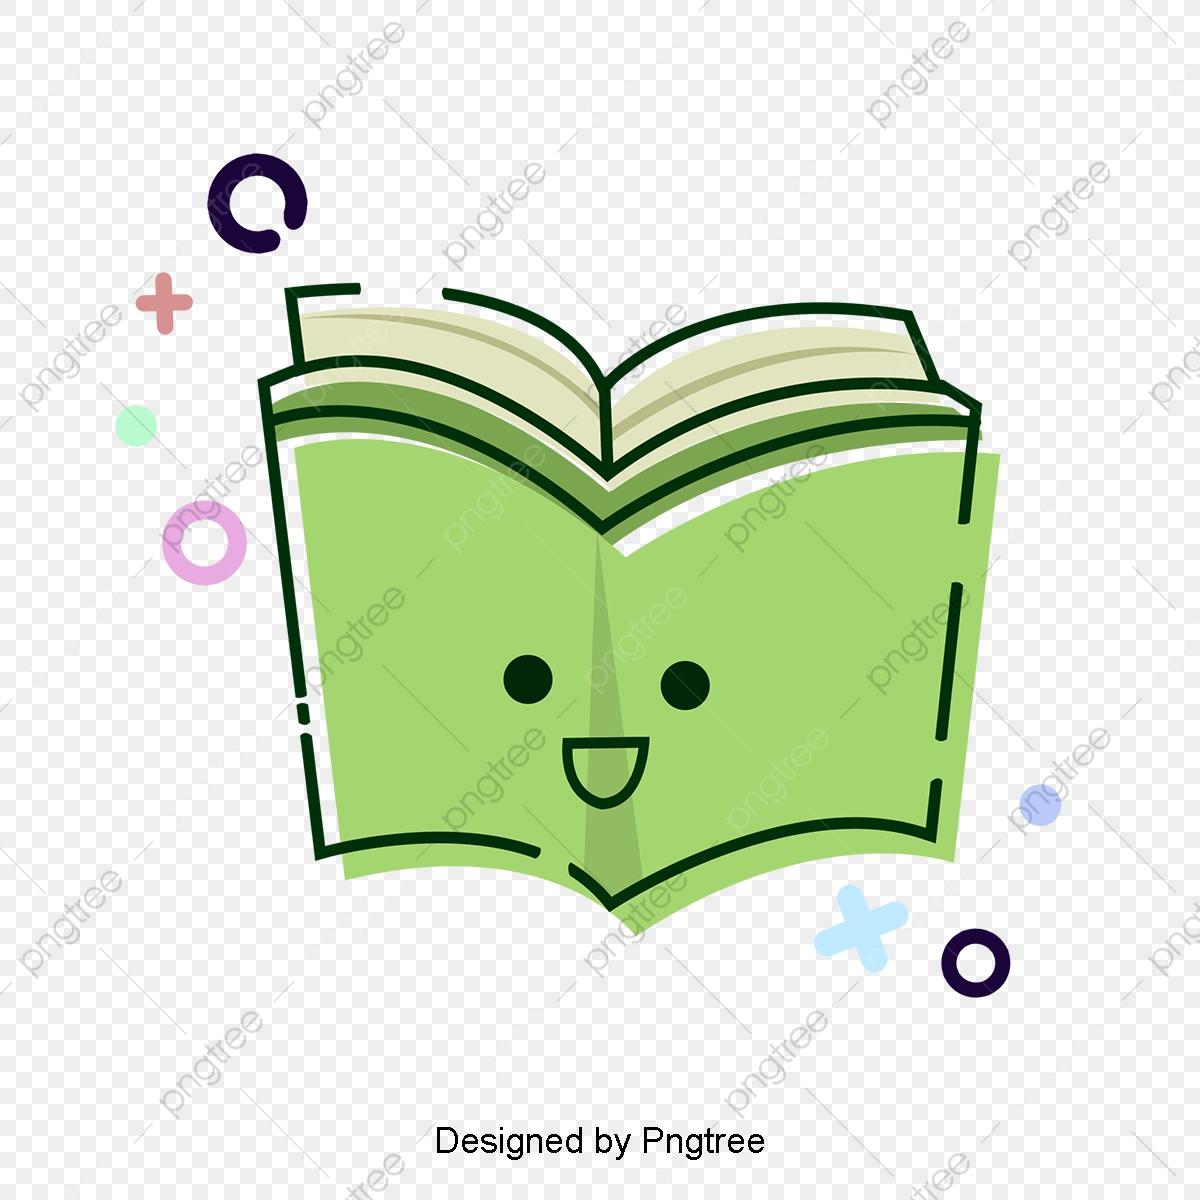 Green Cute Books Knowledge Ocean Elements, Book, Lovely Smiling Face.